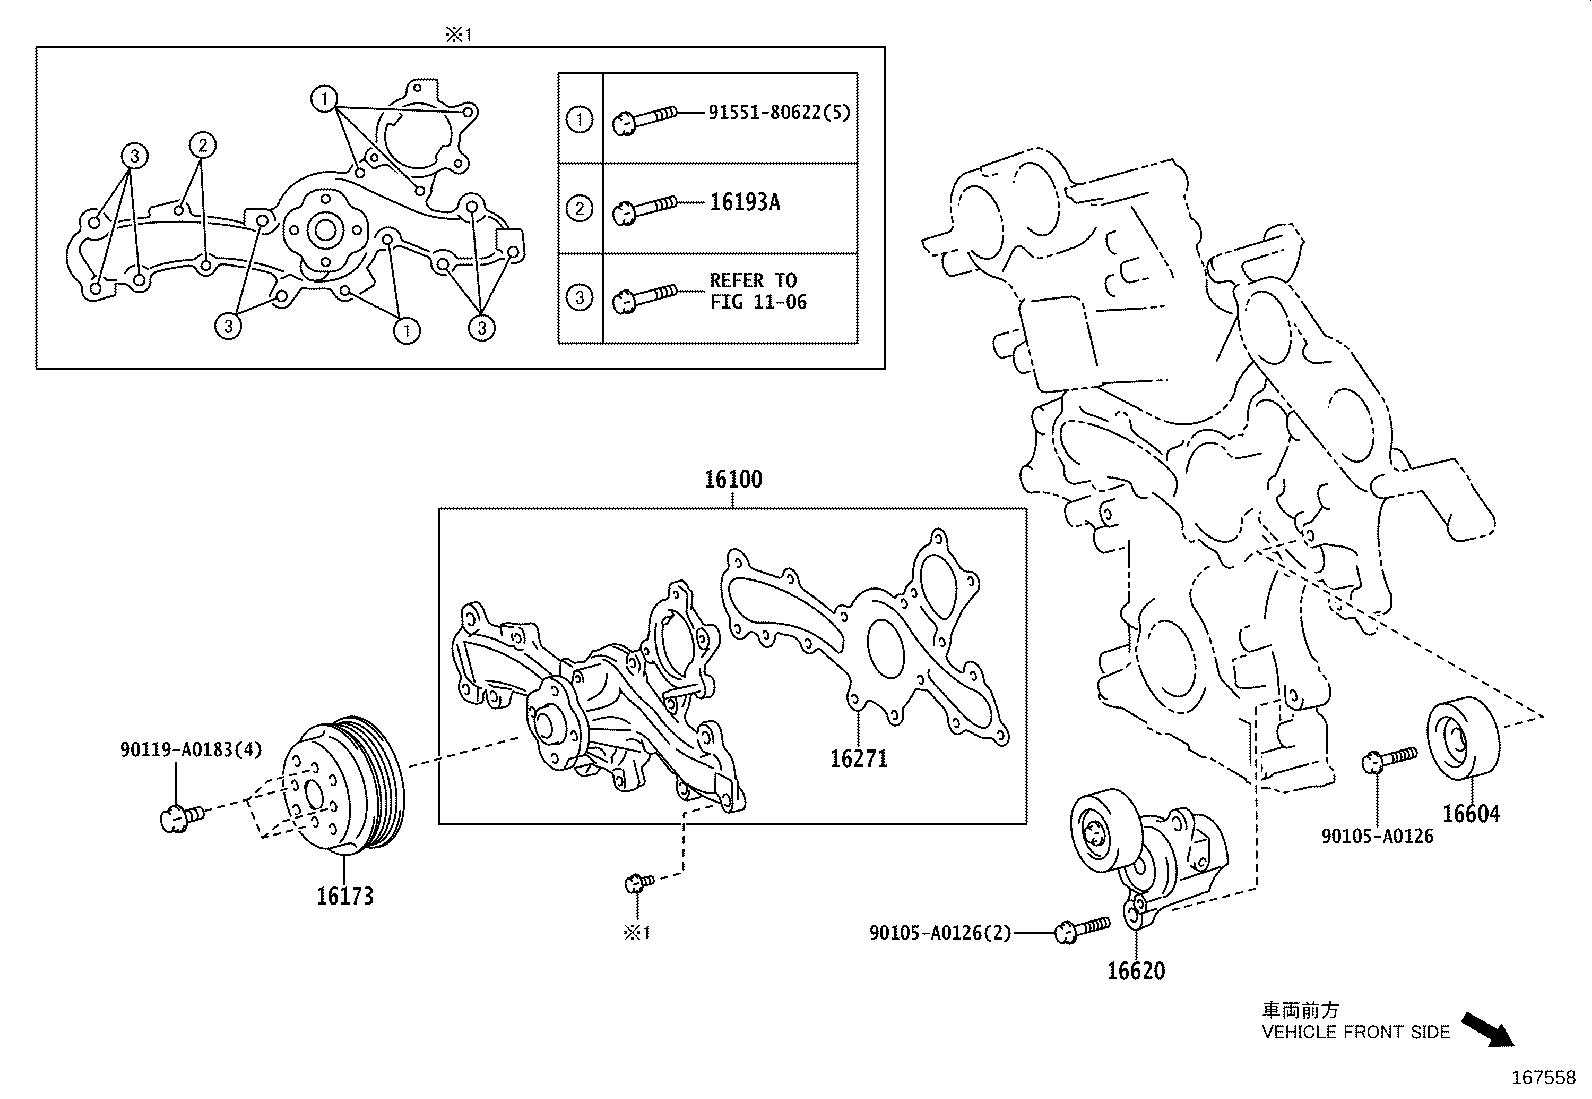 Toyota Highlander Engine Water Pump Pulley A Pulley That